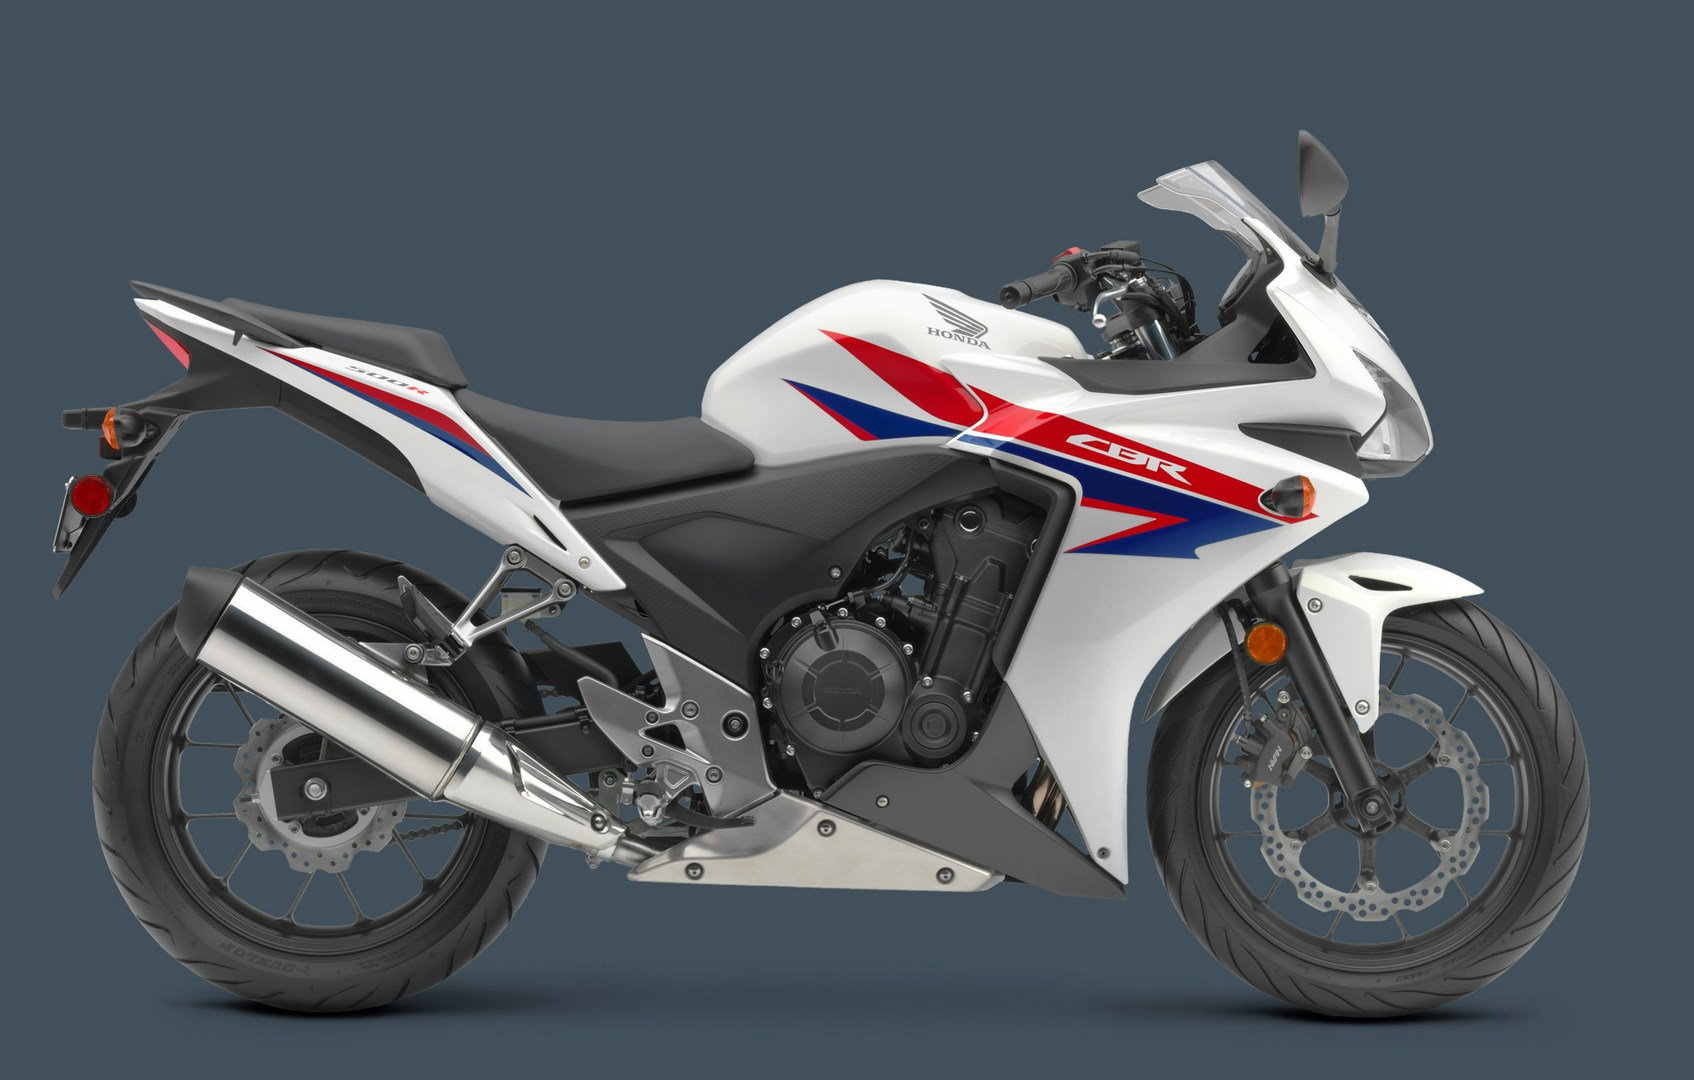 honda recalls 500cc machines for fuel sensor malfunction and stalling danger   autoevolution